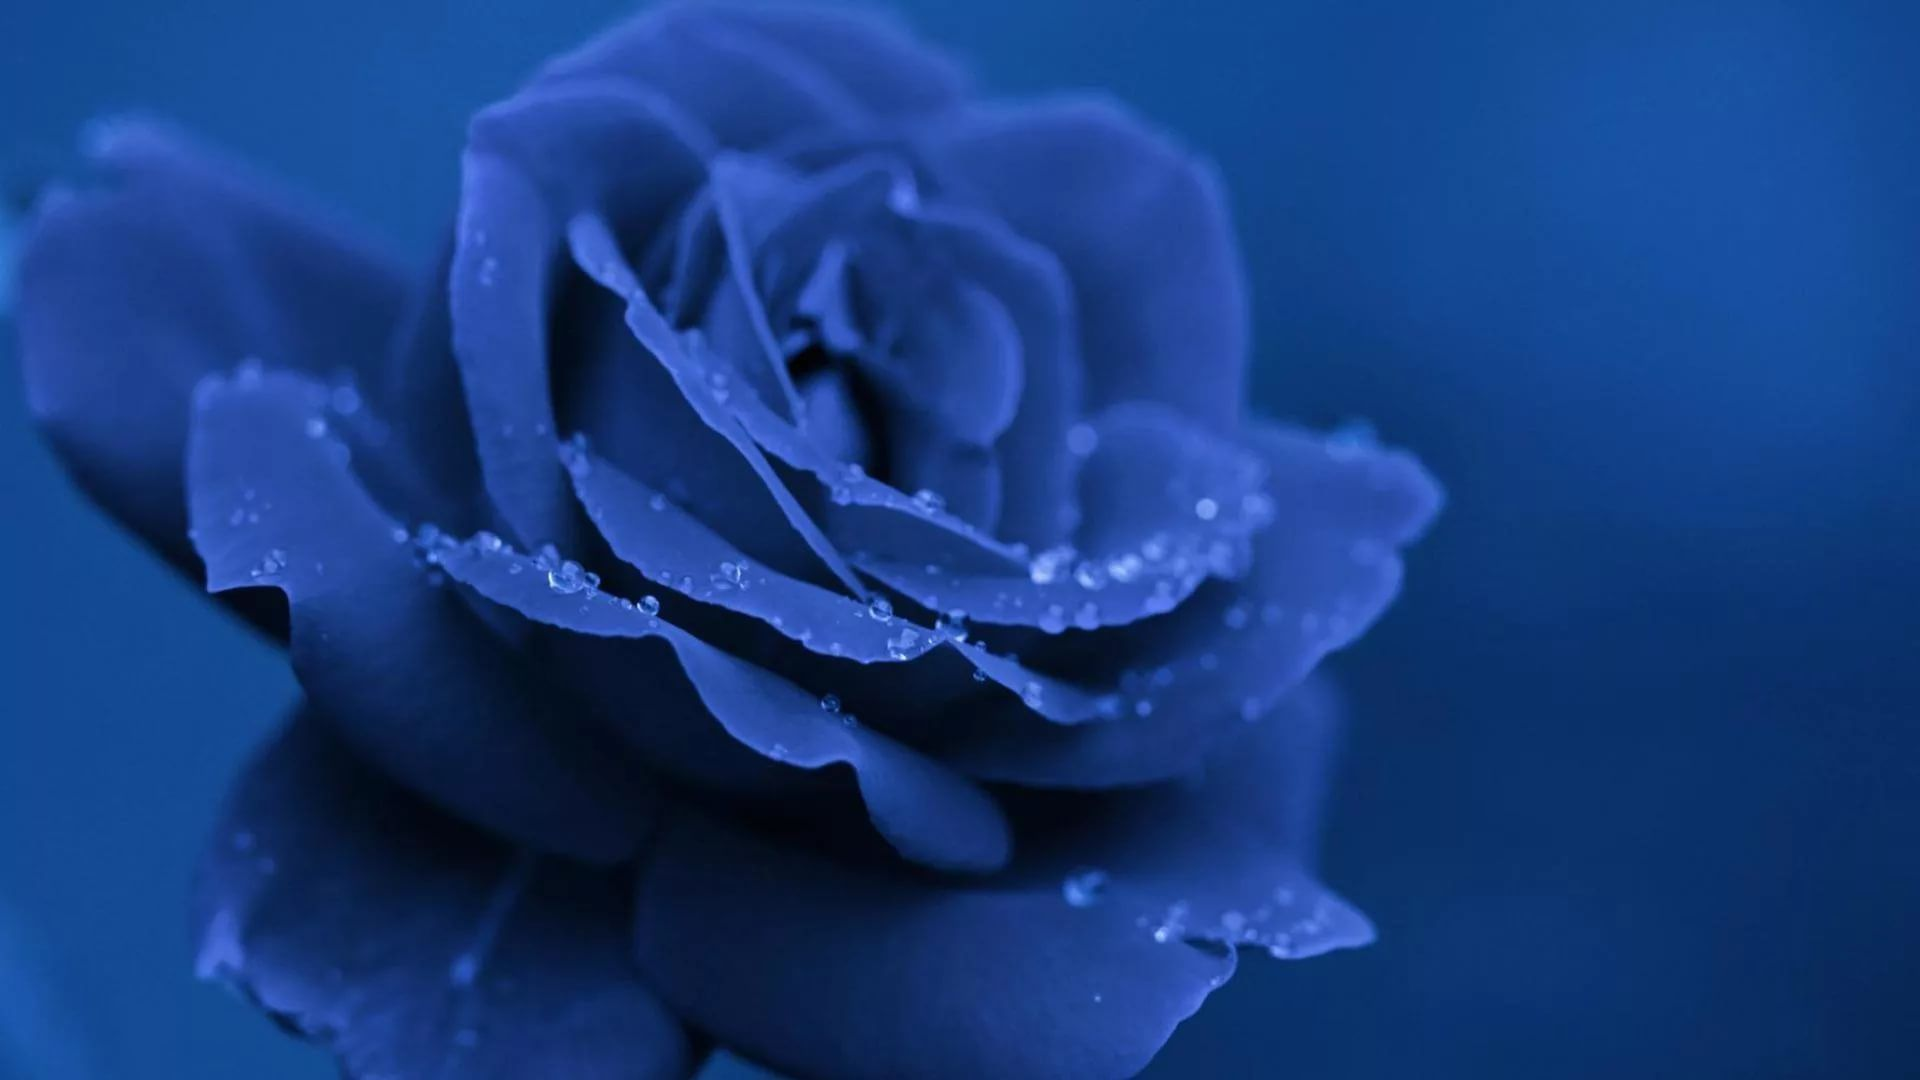 Blue Rose new wallpaper